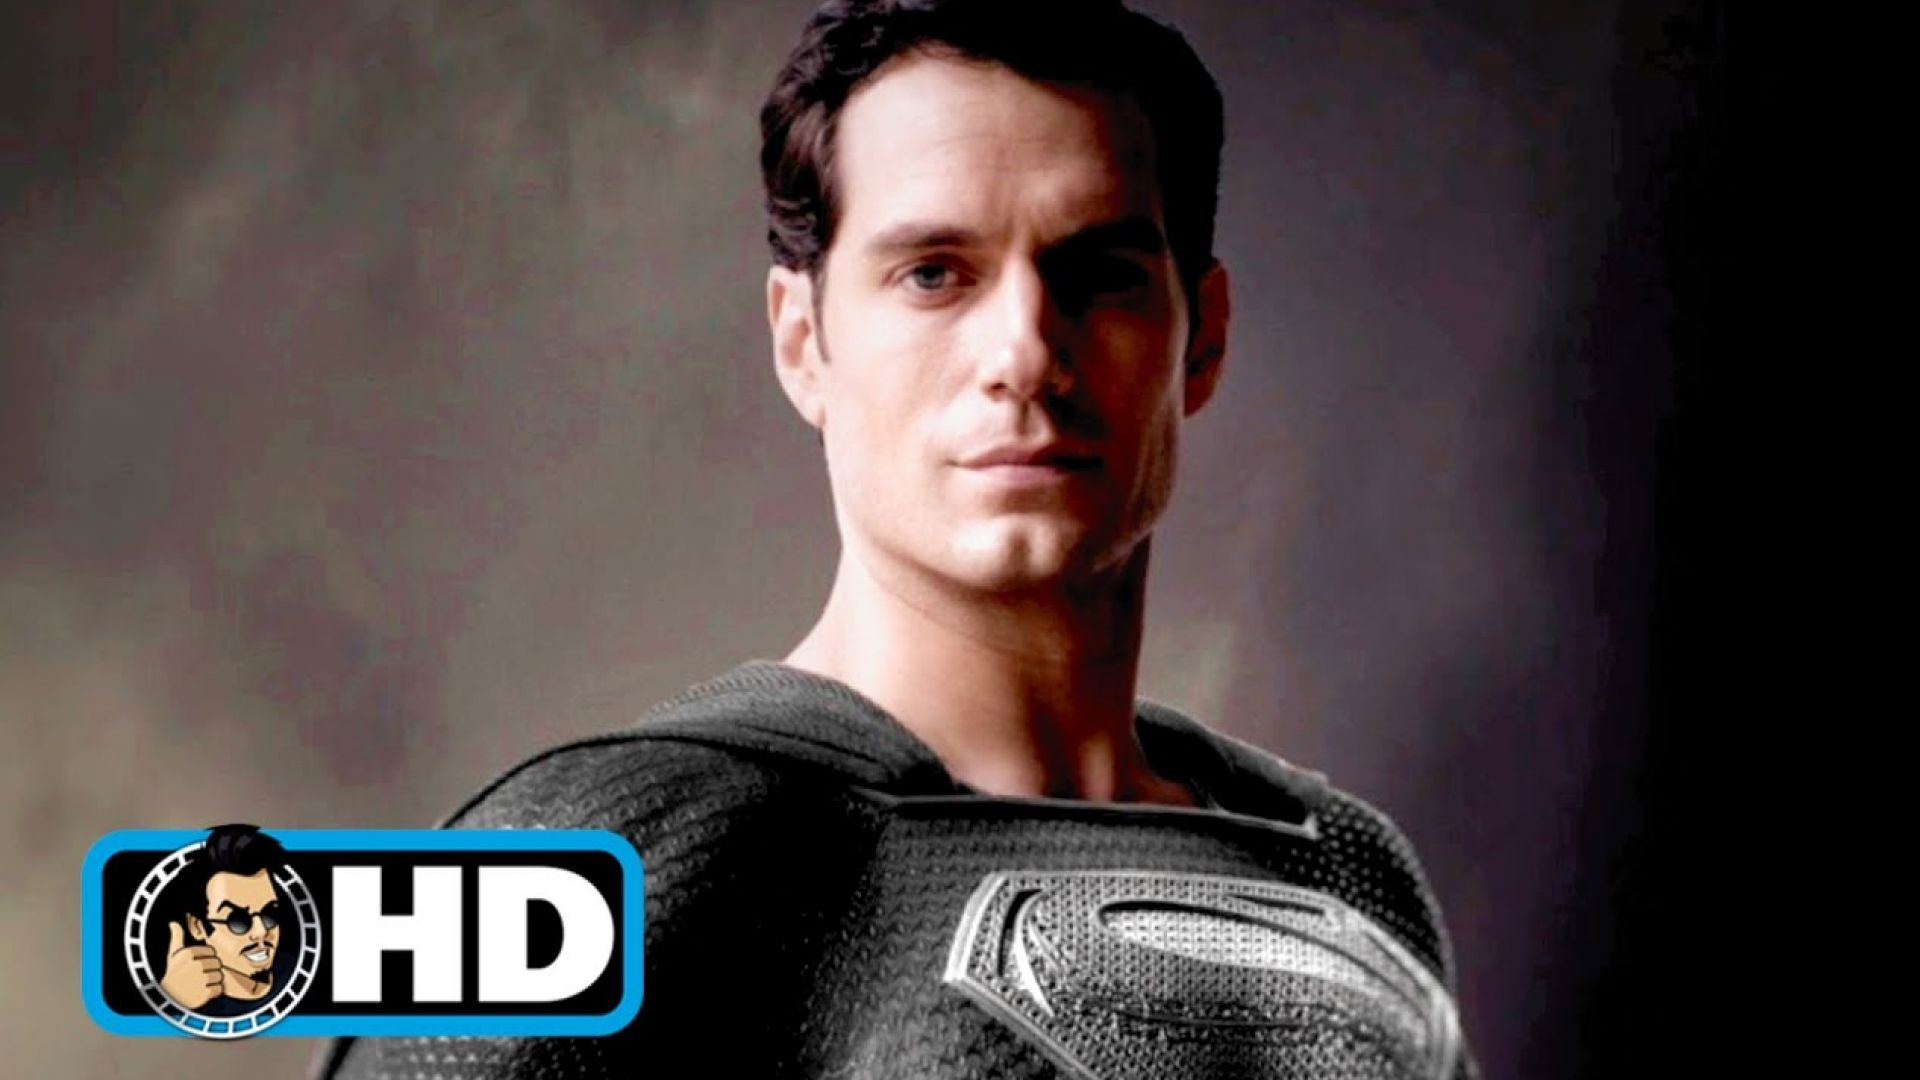 Black Suit Superman clip from the Snyder Cut